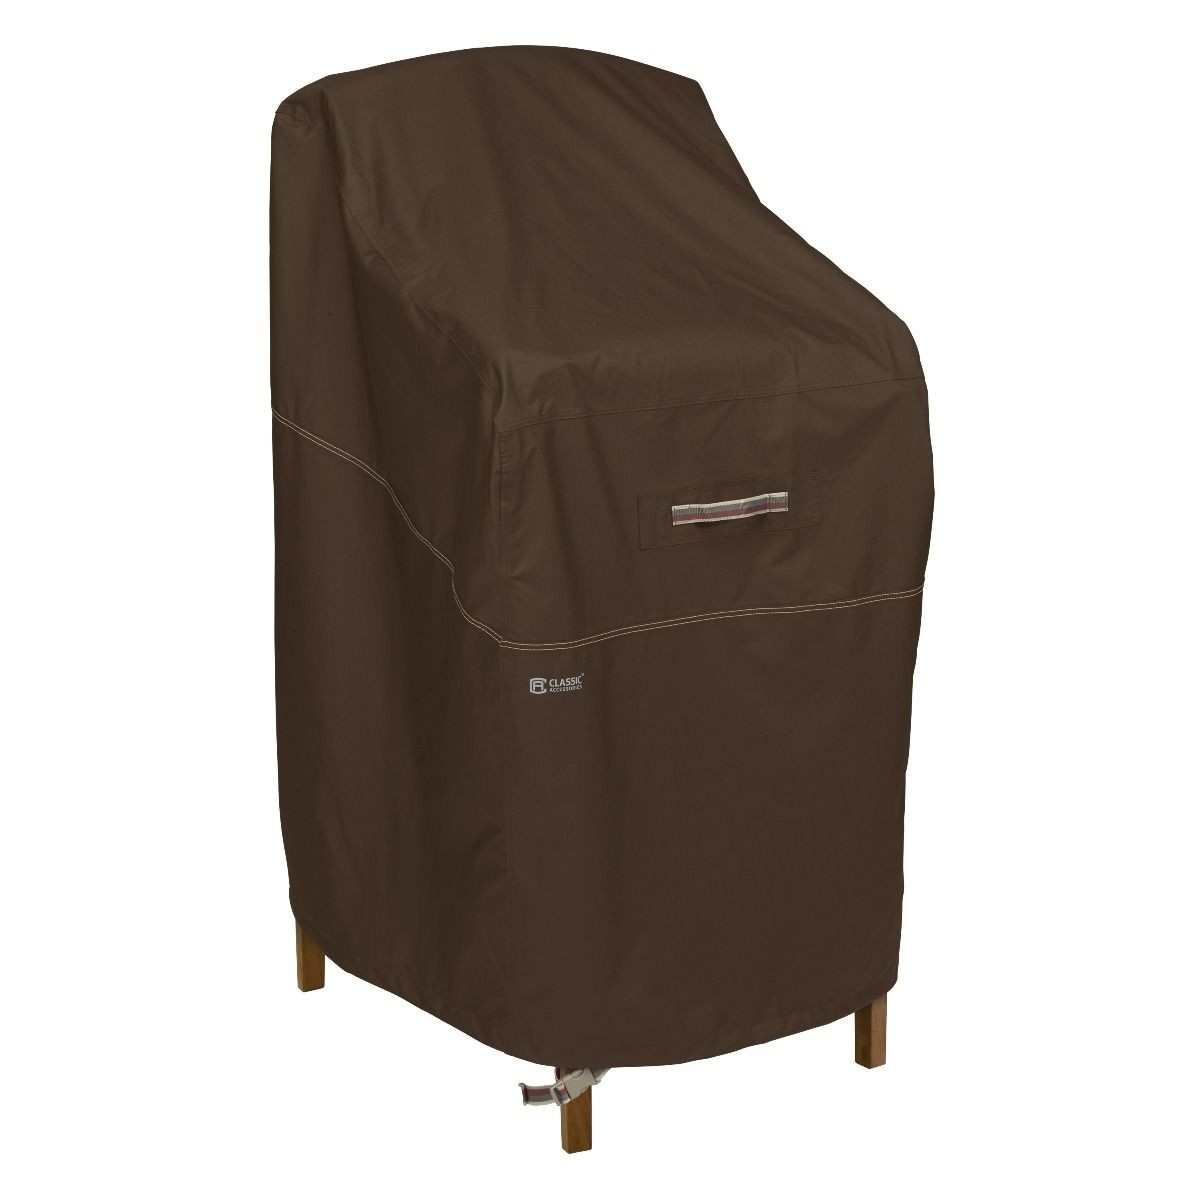 Bar Height Chair Rain Proof Outdoor Cover